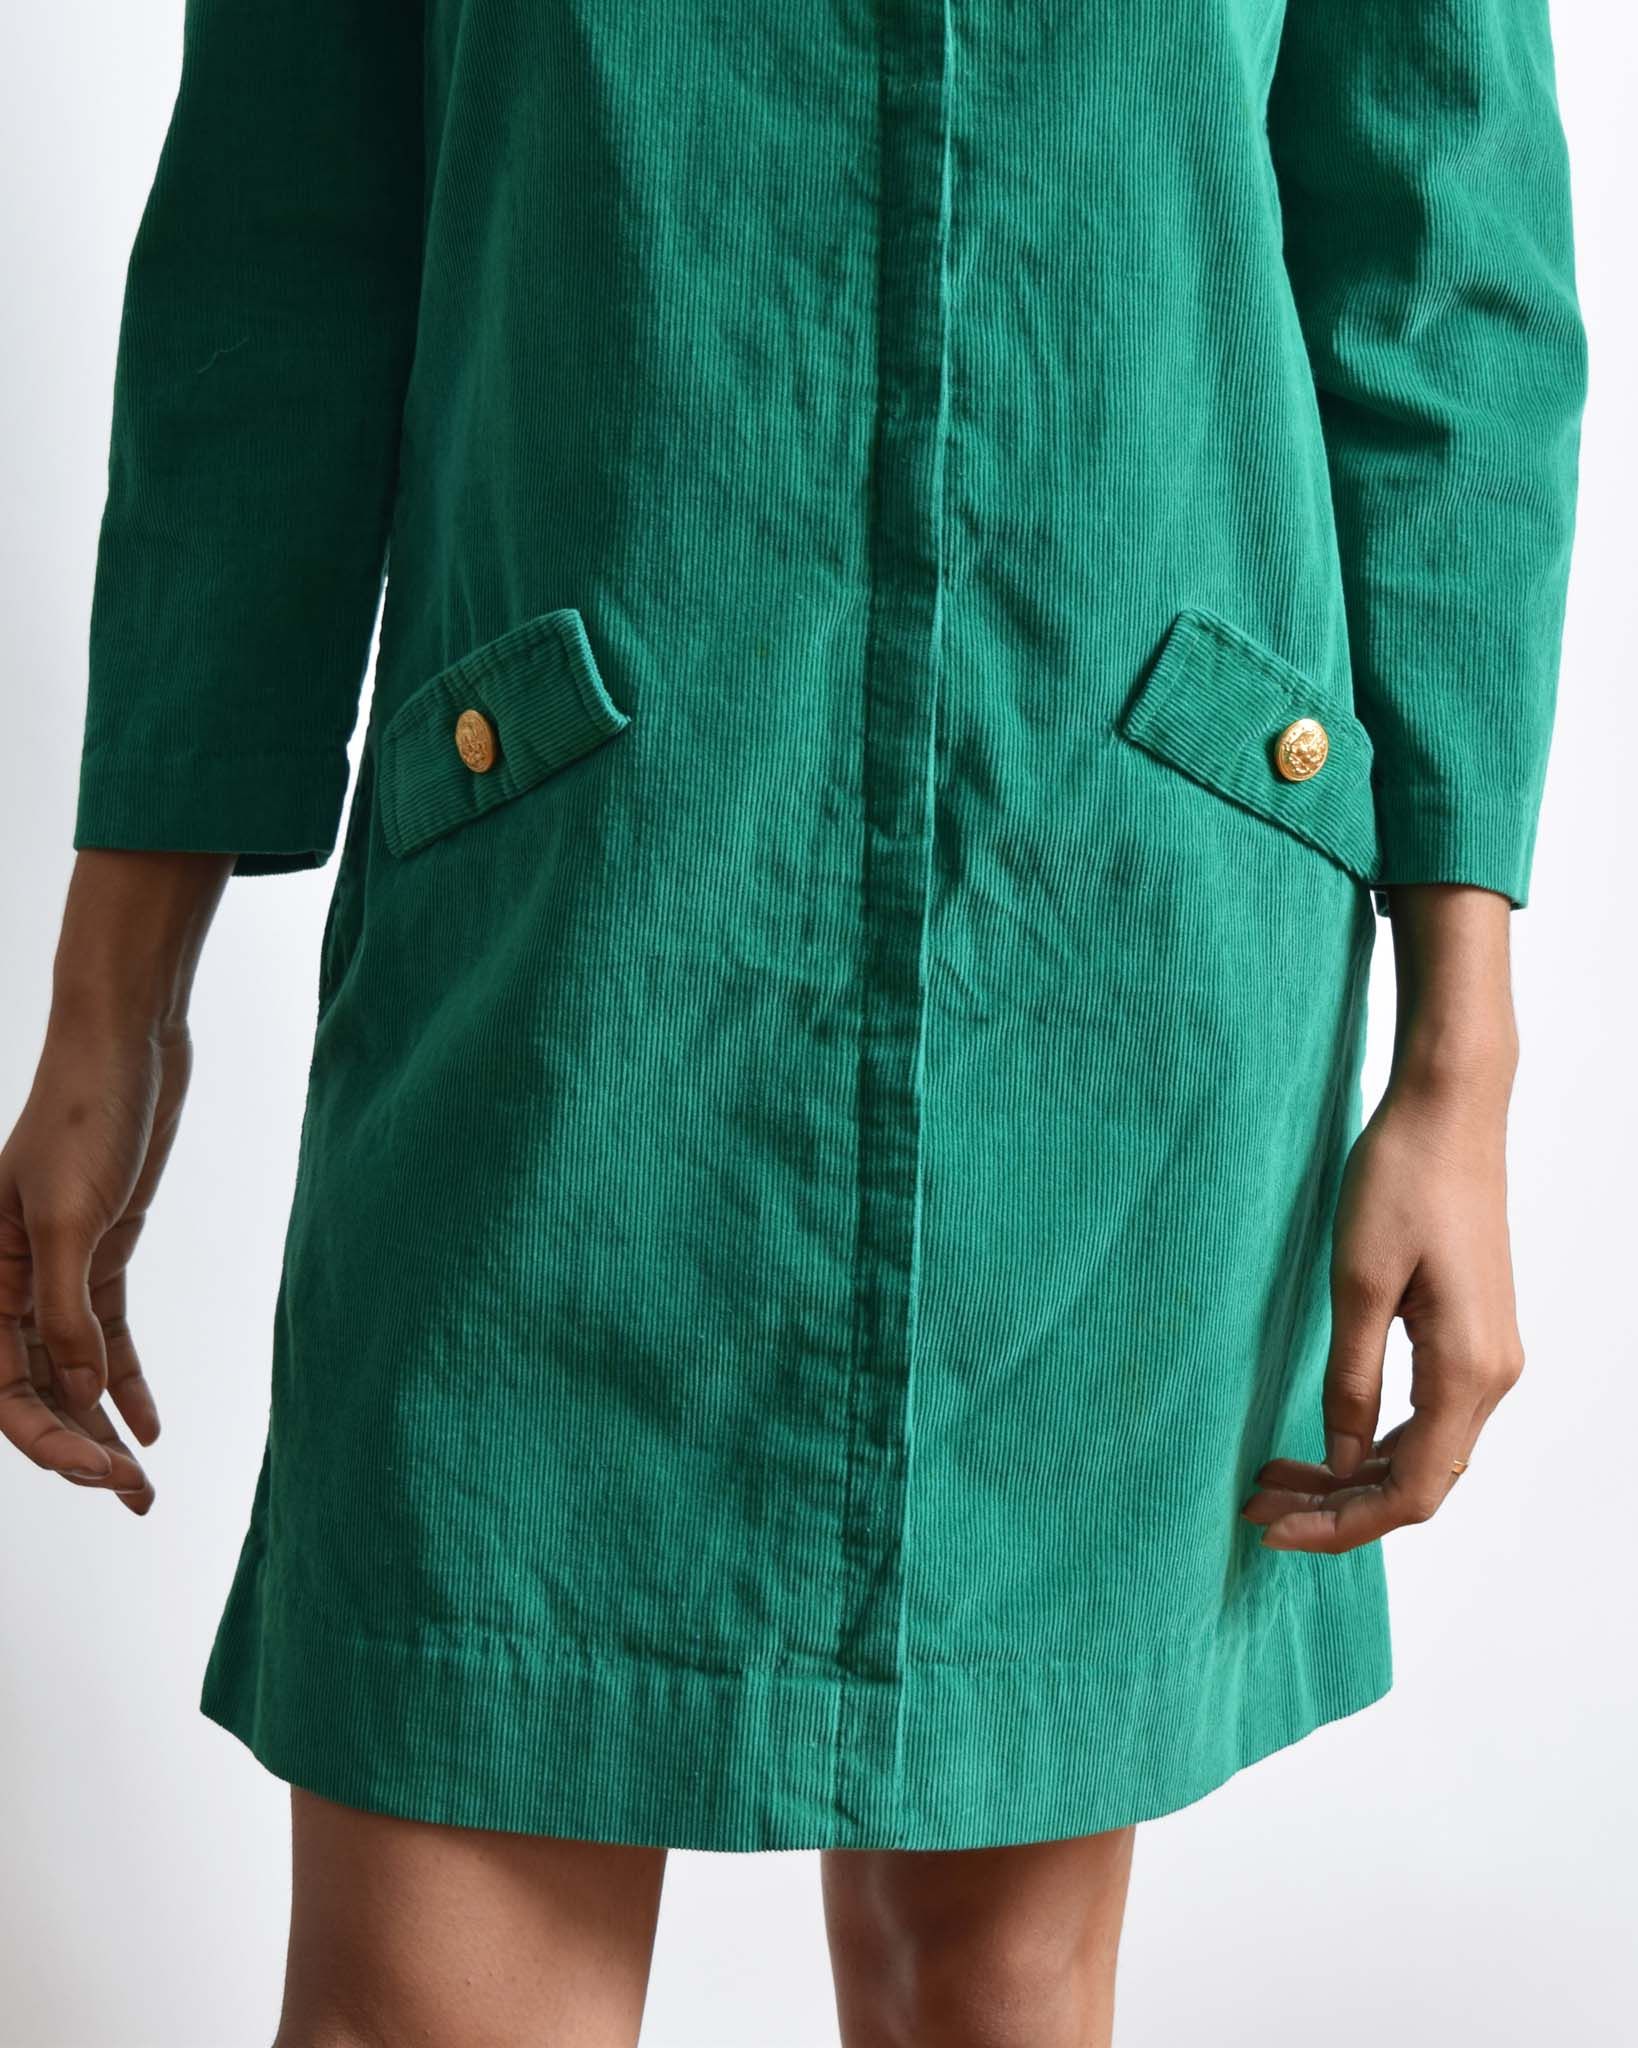 Vintage 1960s Corduroy Shift Dress